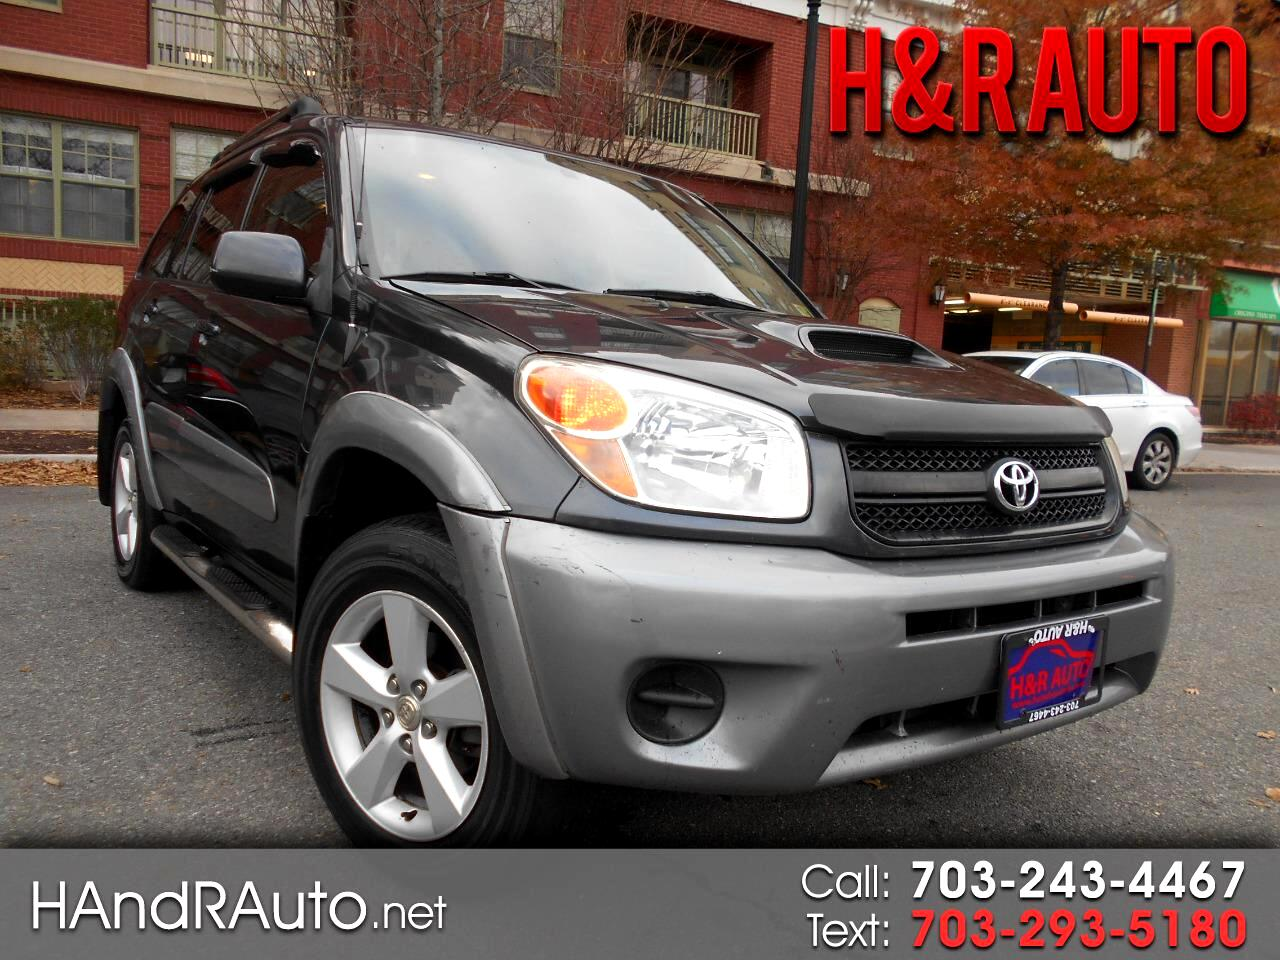 2004 Toyota RAV4 4dr Manual 4WD (Natl)